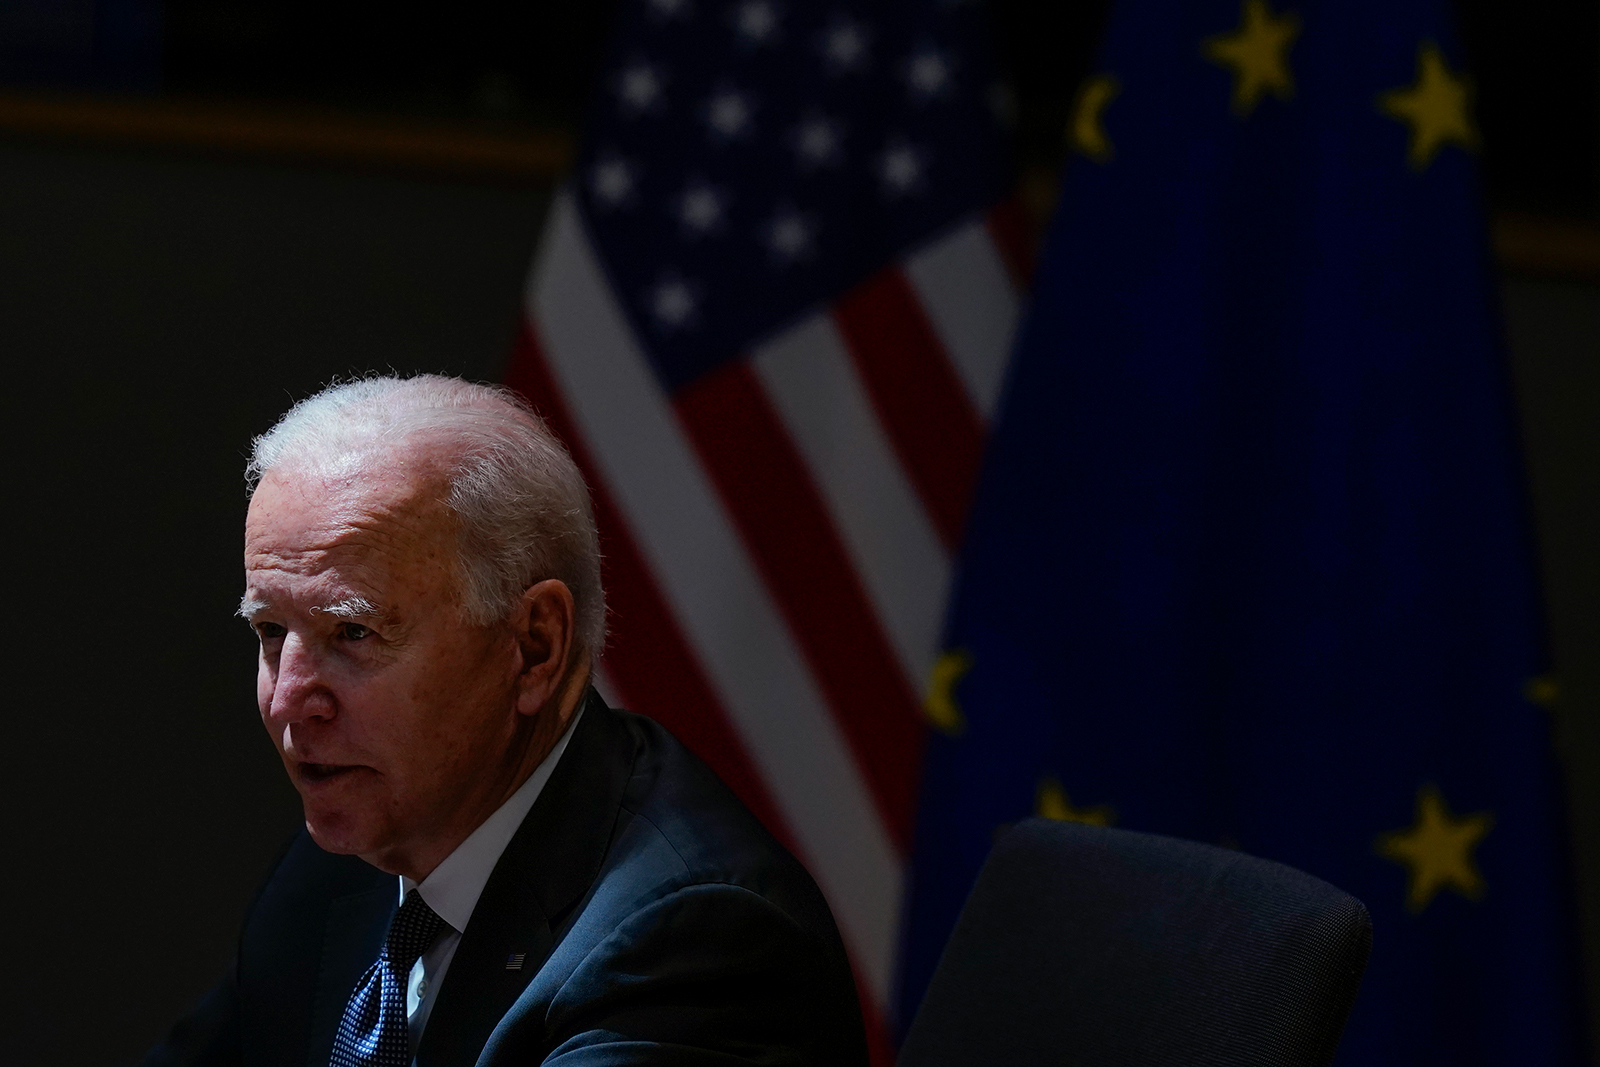 President Joe Biden speaks during the United States-European Union Summit at the European Council in Brussels, Tuesday, June 15.